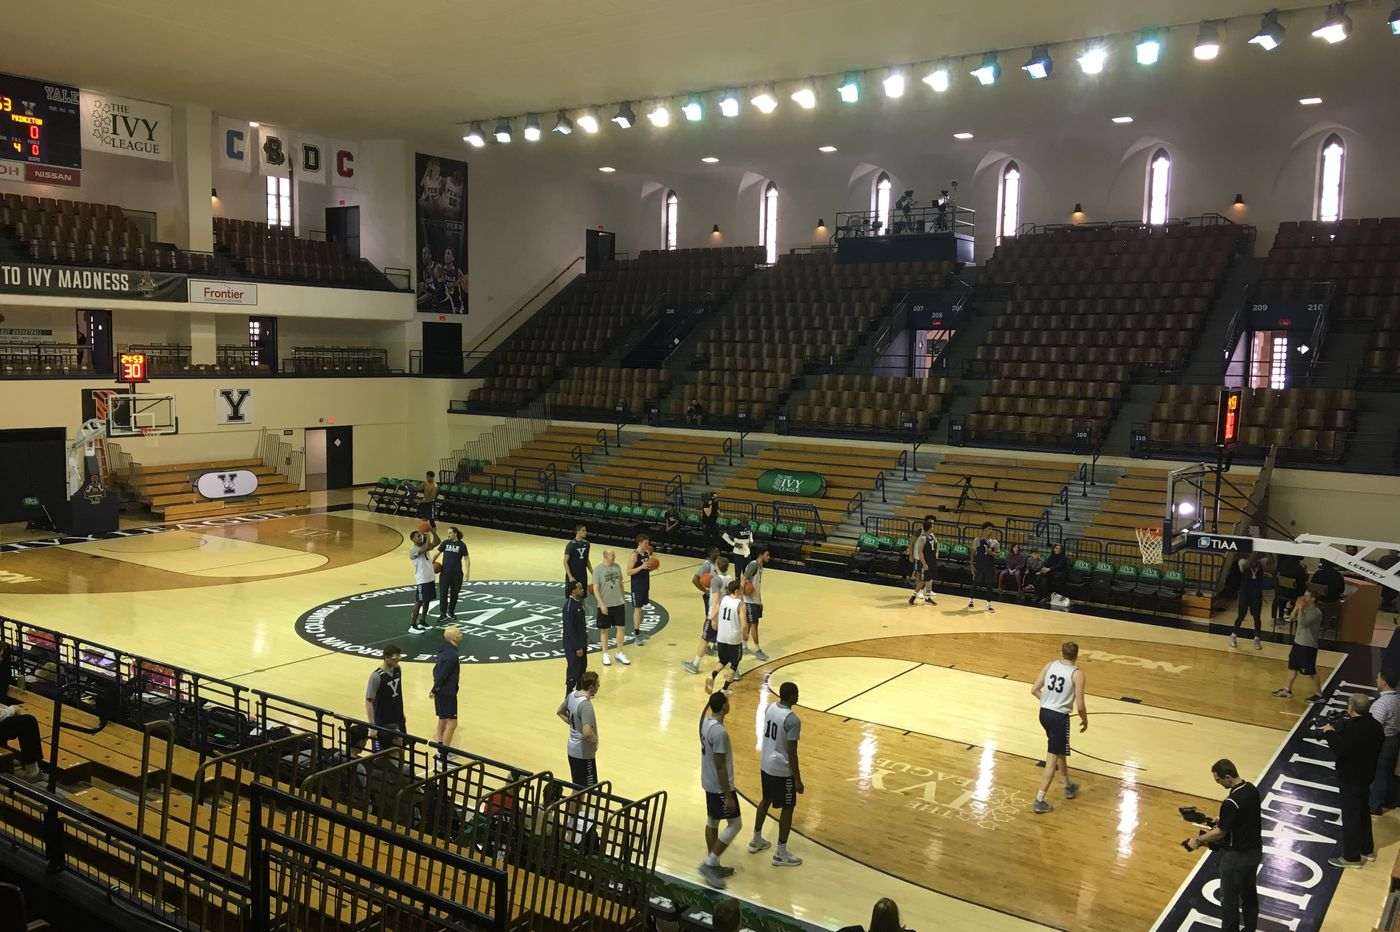 Ivy League director: Basketball tournament 'belongs on our campuses'